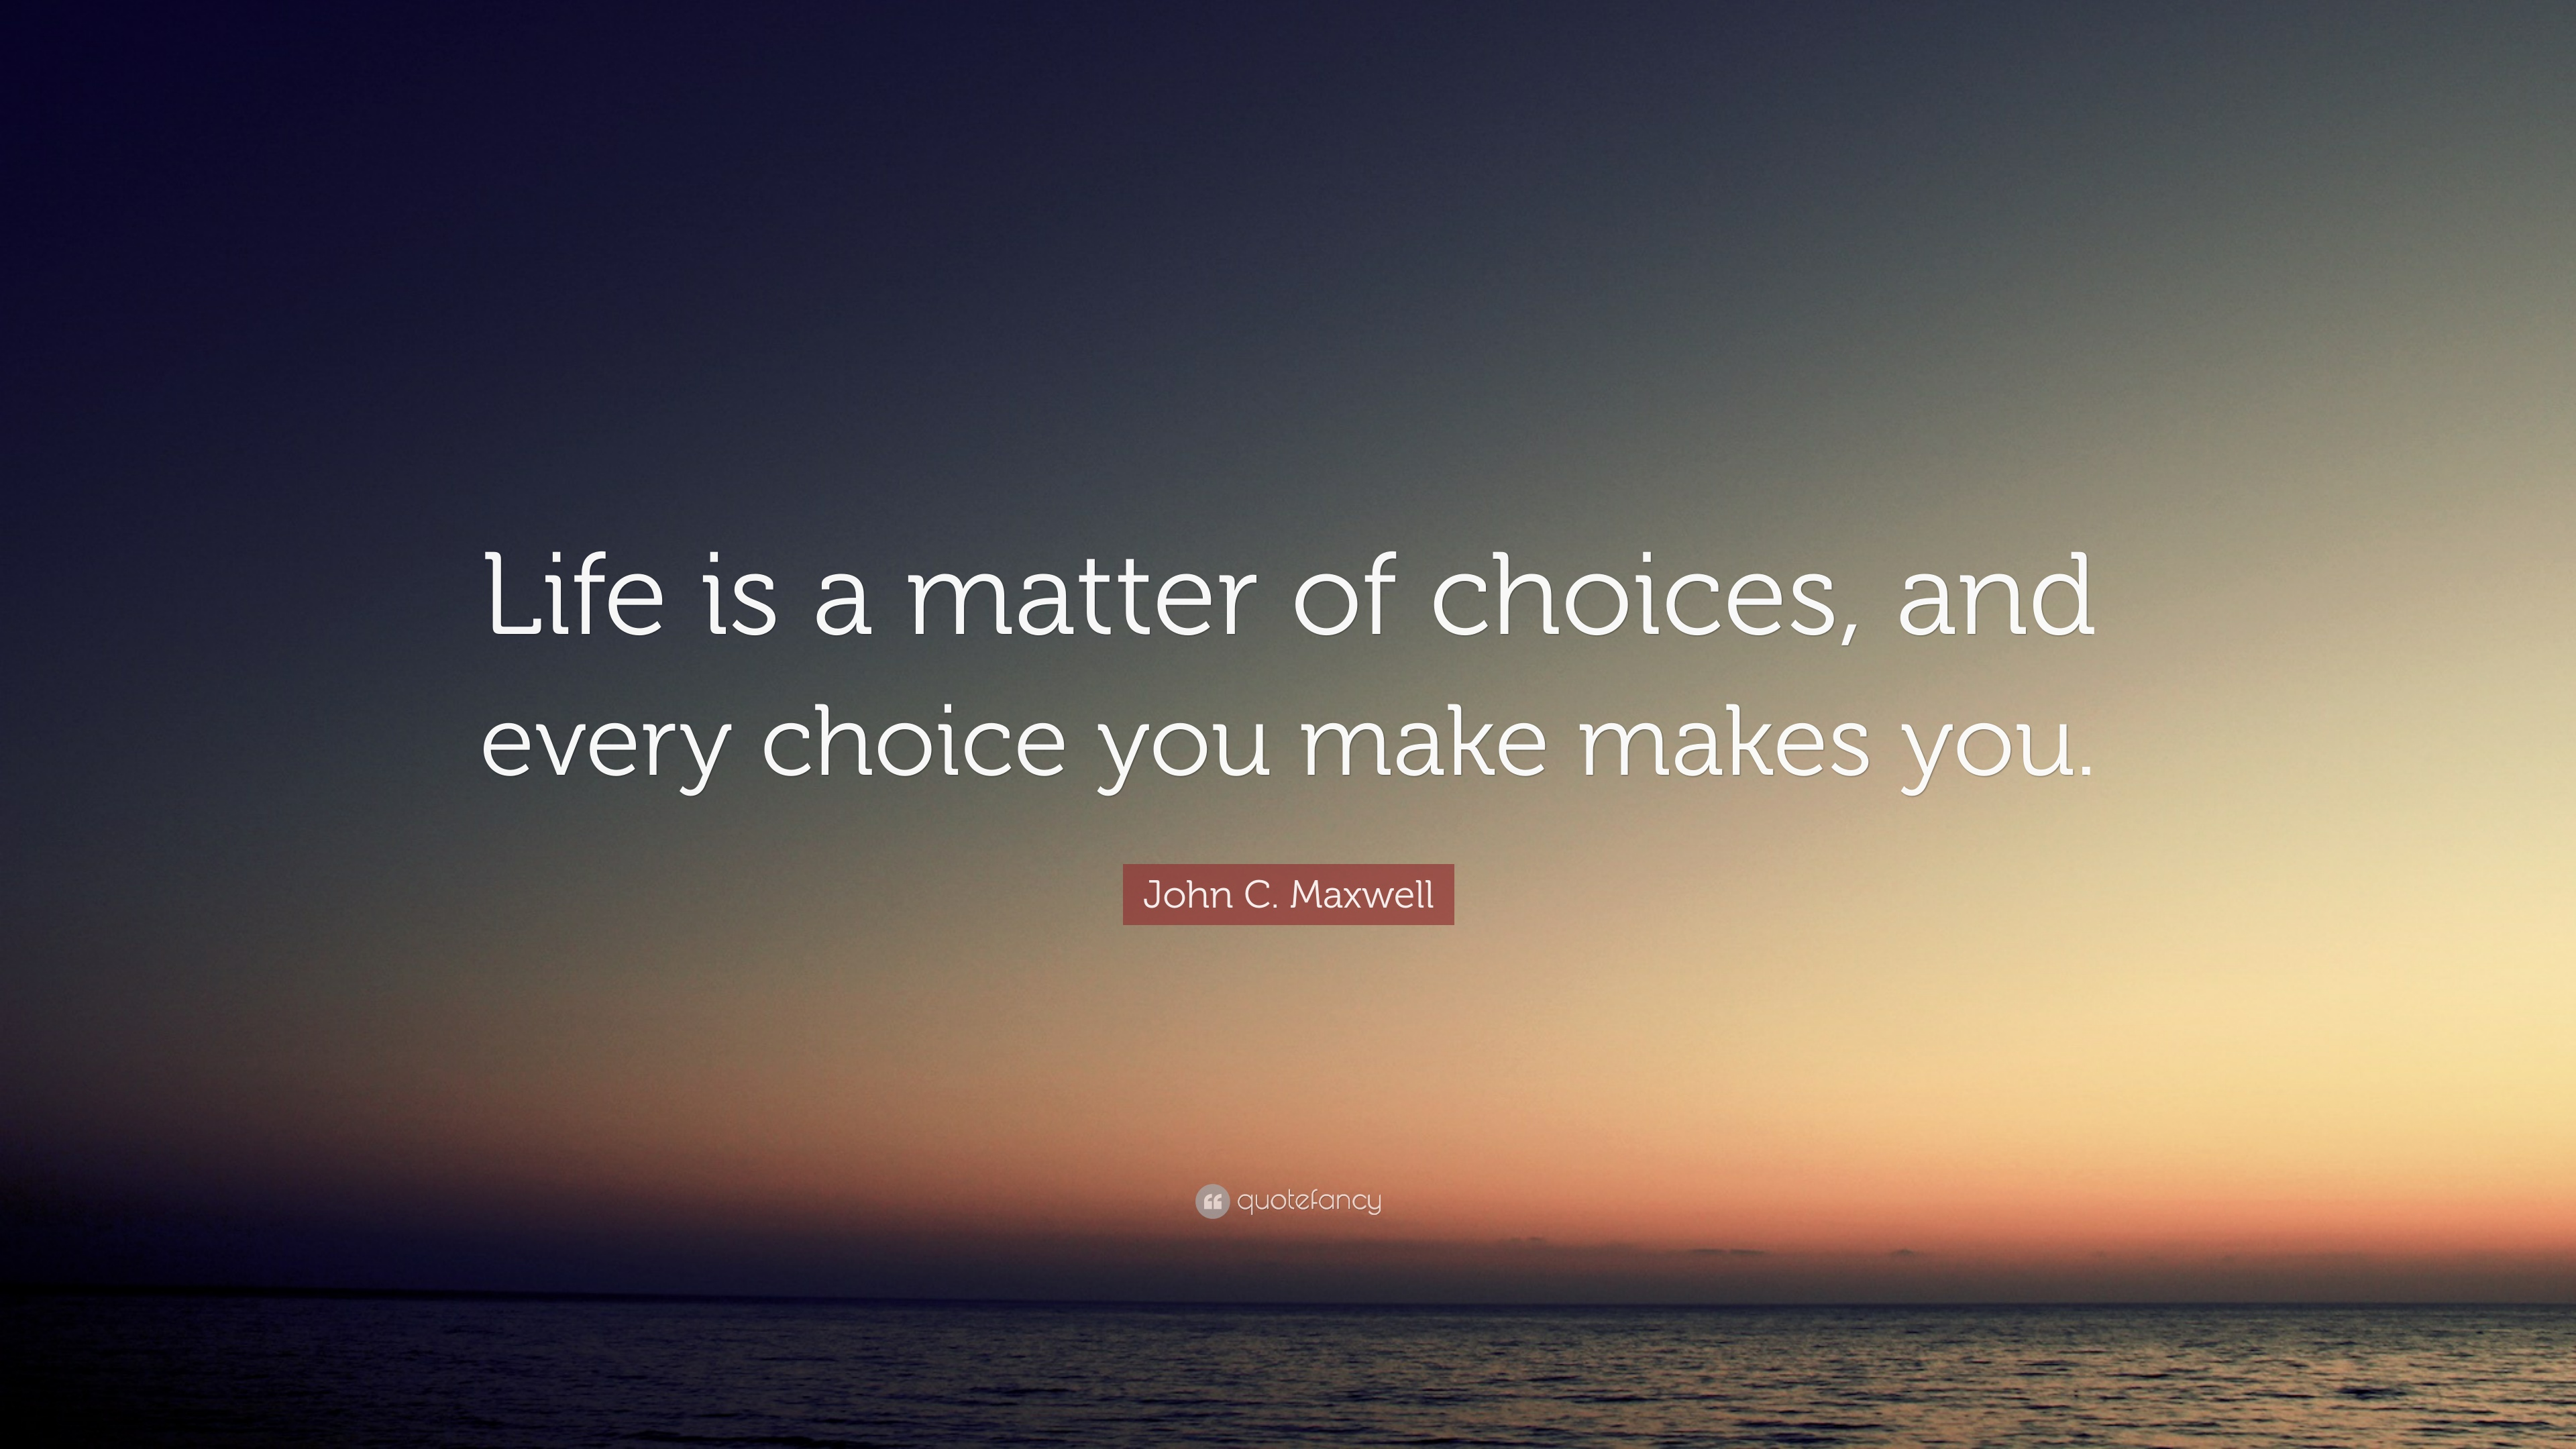 https://quotefancy.com/media/wallpaper/3840x2160/1720884-John-C-Maxwell-Quote-Life-is-a-matter-of-choices-and-every-choice.jpg